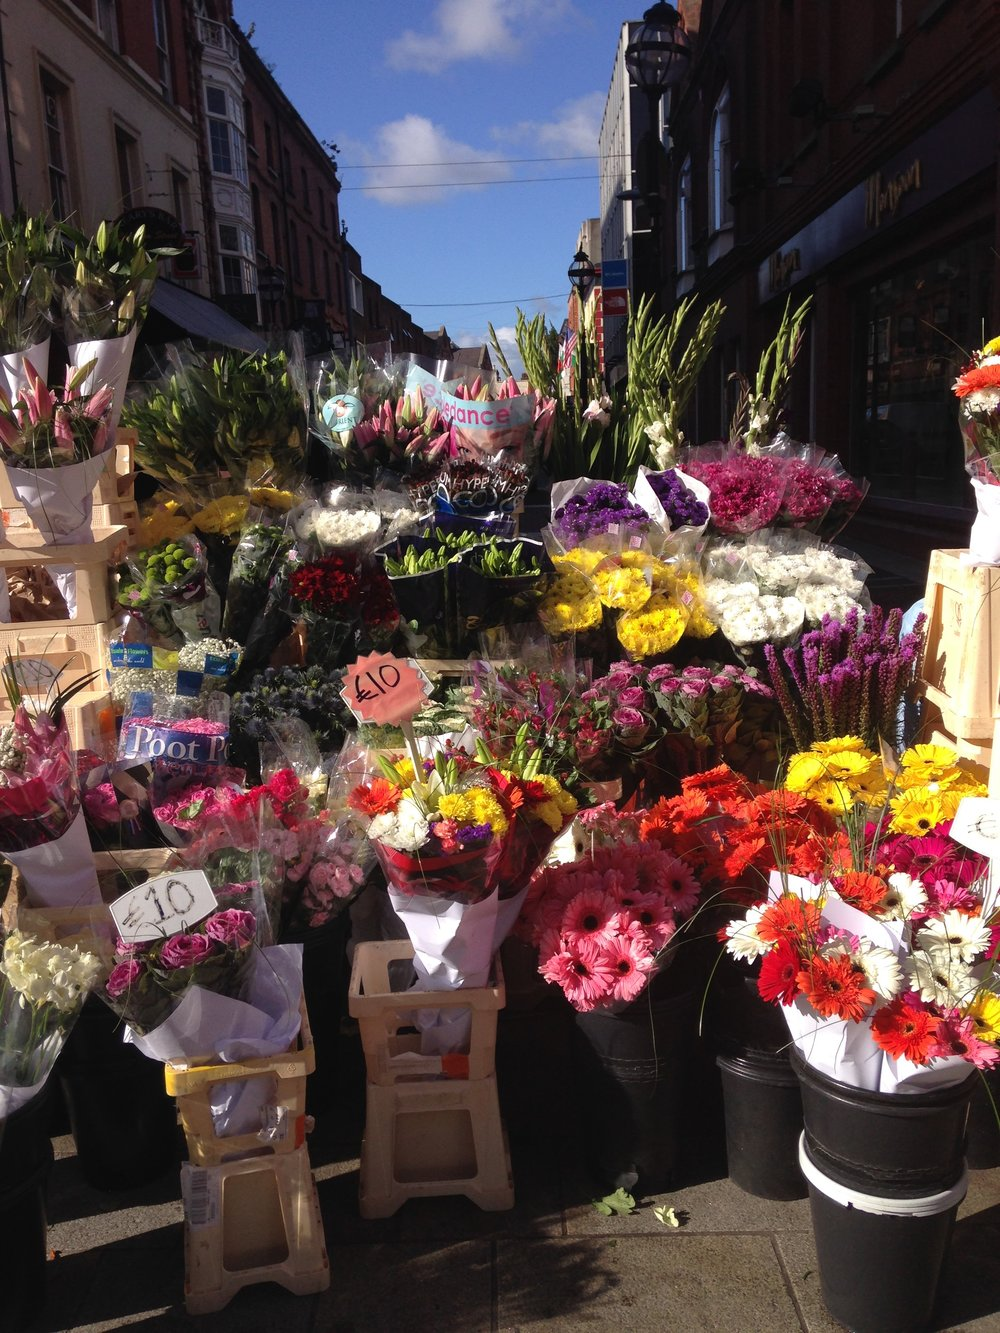 Colour Glorious Colour on Grafton St today! Love love love! xxxx